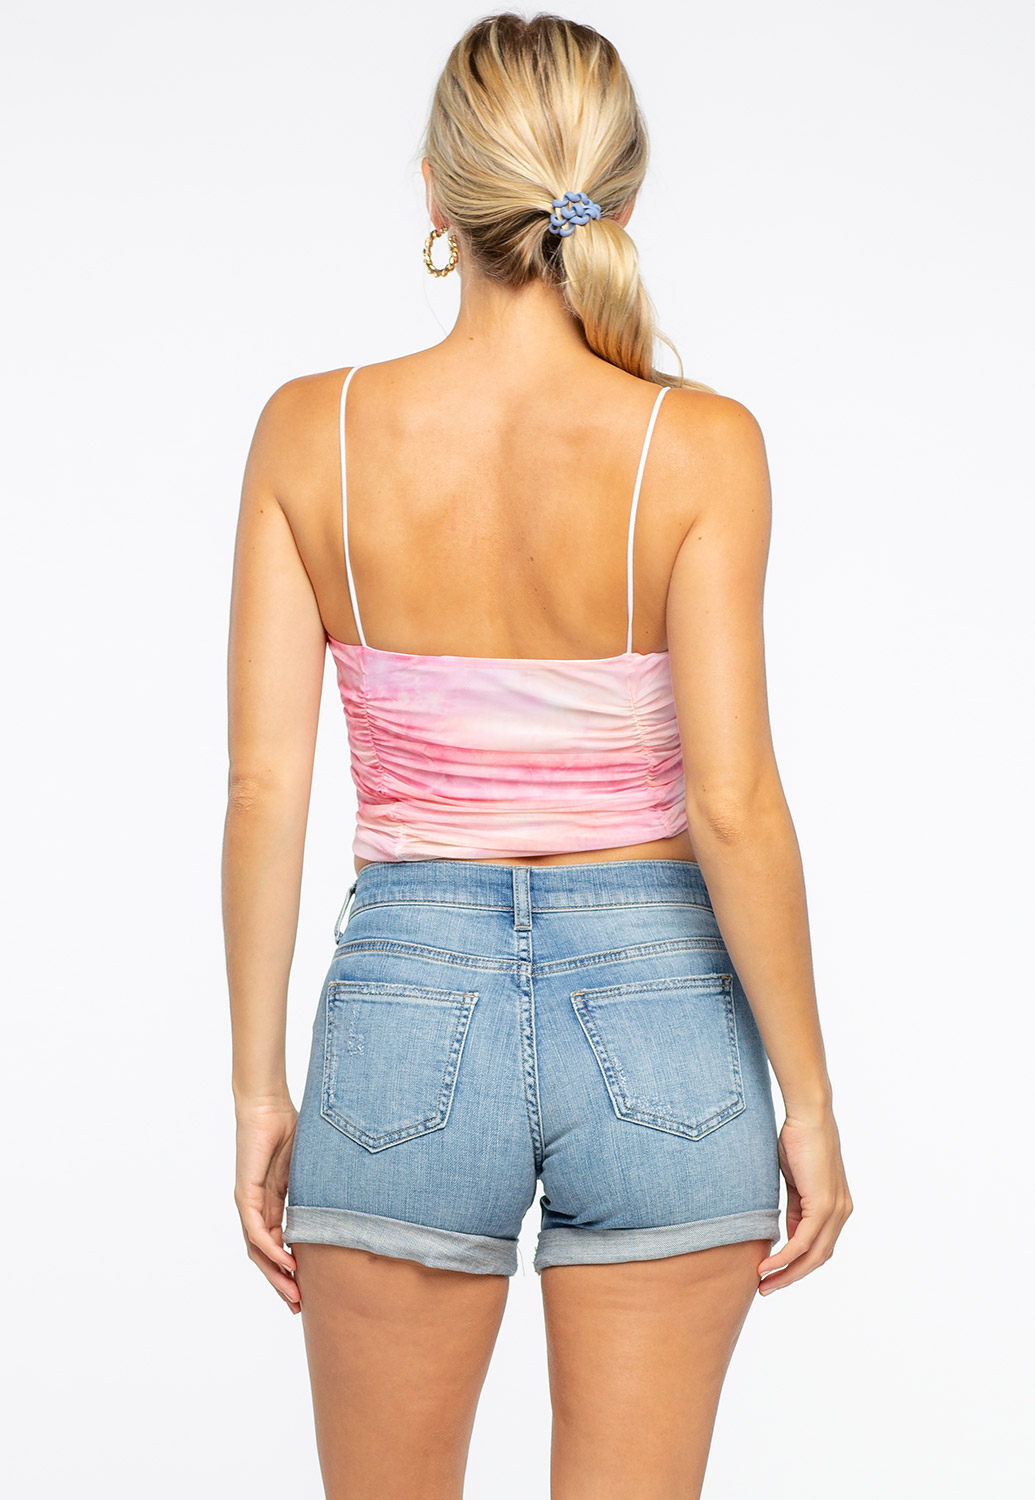 Watercolor Inspired Mesh Sheer Ruched Top